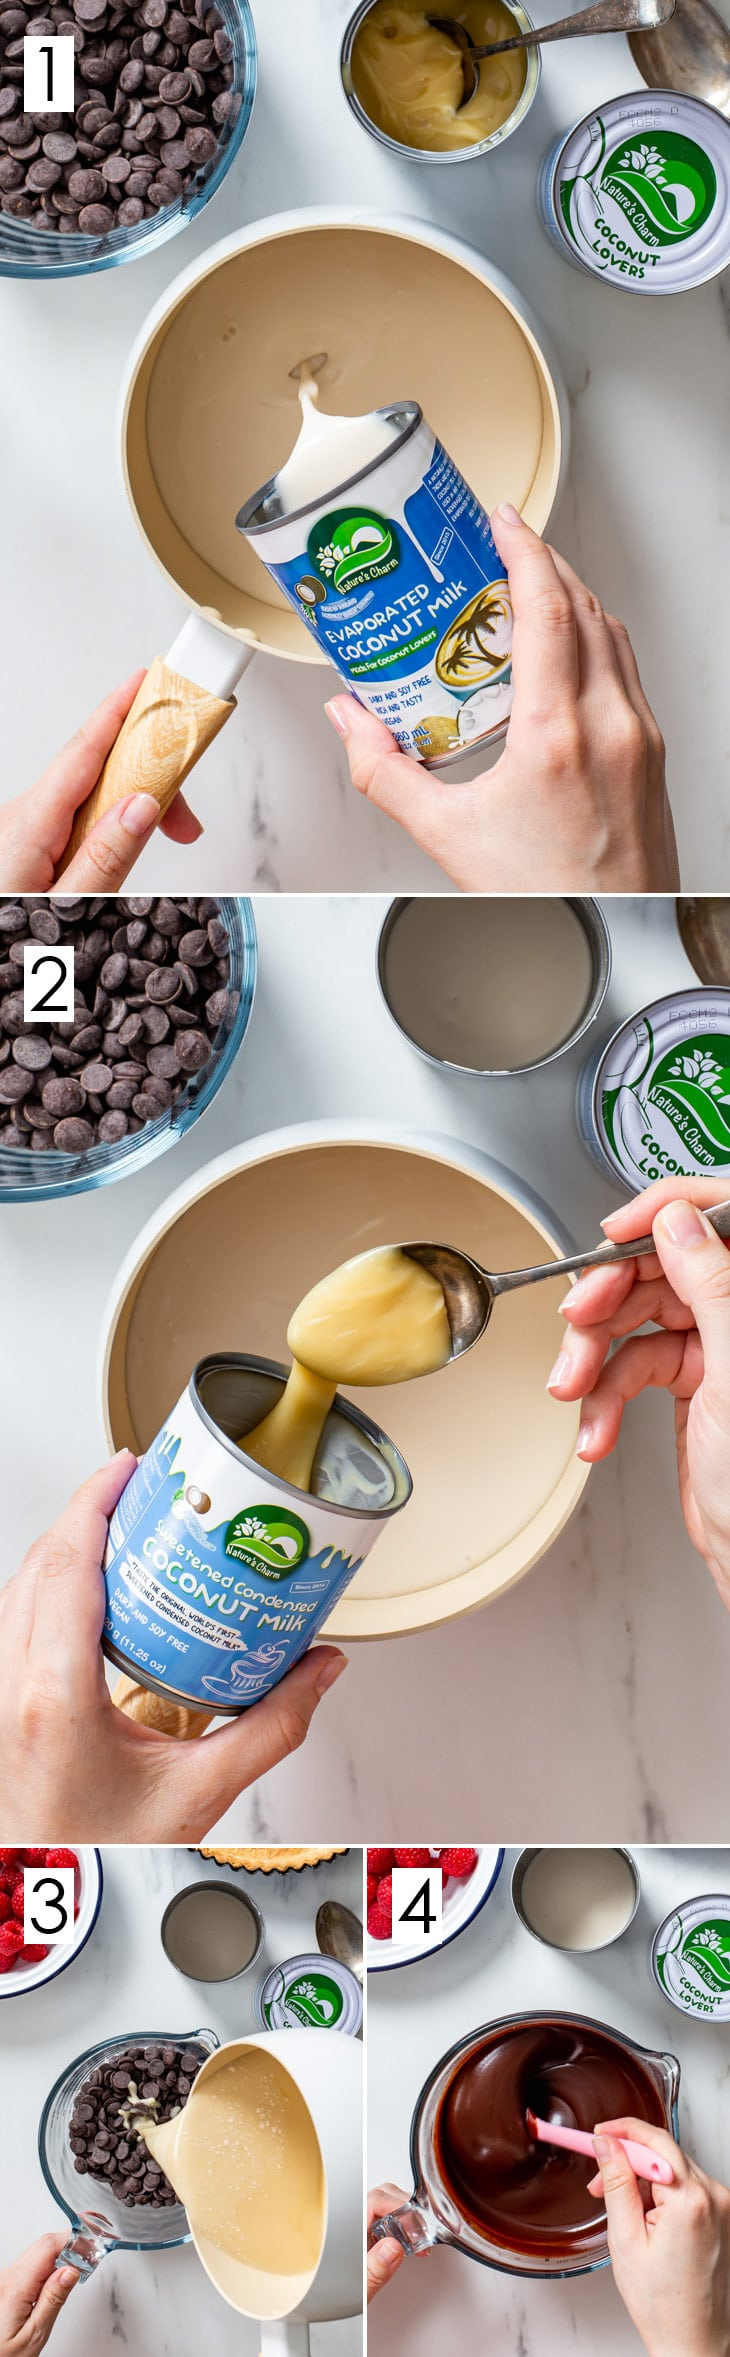 The 4-step process of making the vegan chocolate ganache filling.